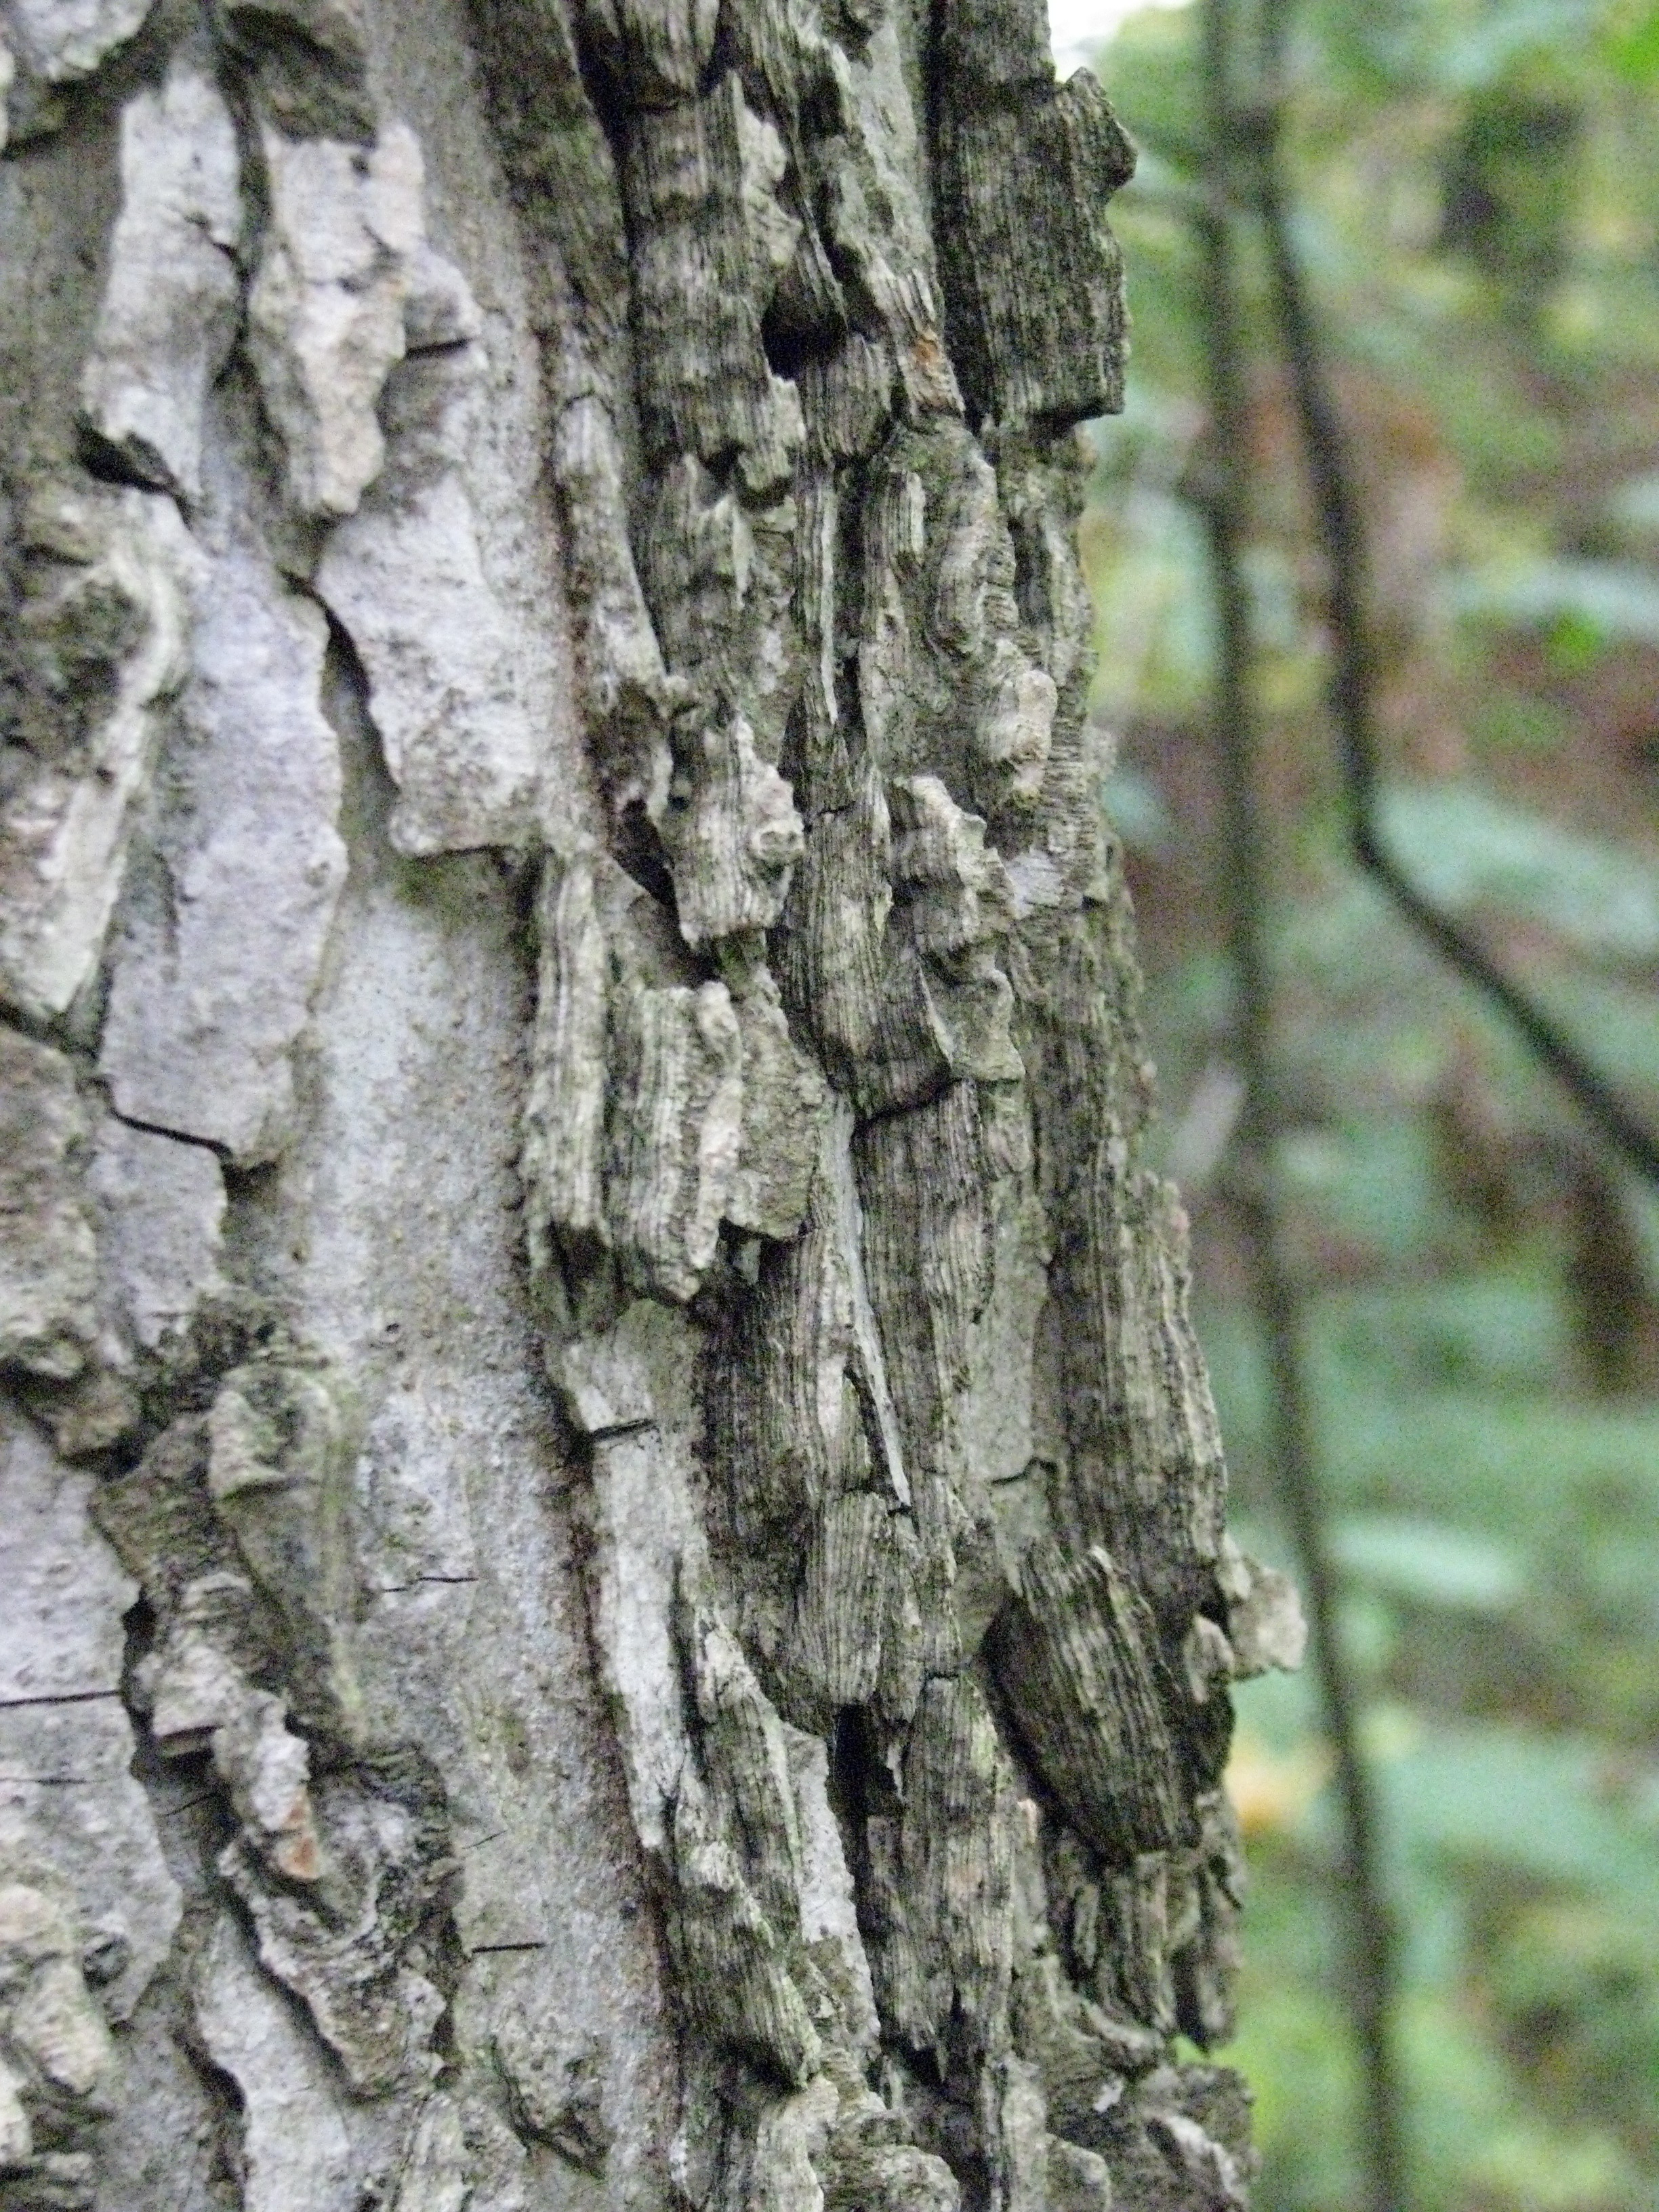 """""""   Celtis occidentalis (bark) - Ulmaceae   """" by    Kerry Woods    is licensed under    CC BY 2.0"""